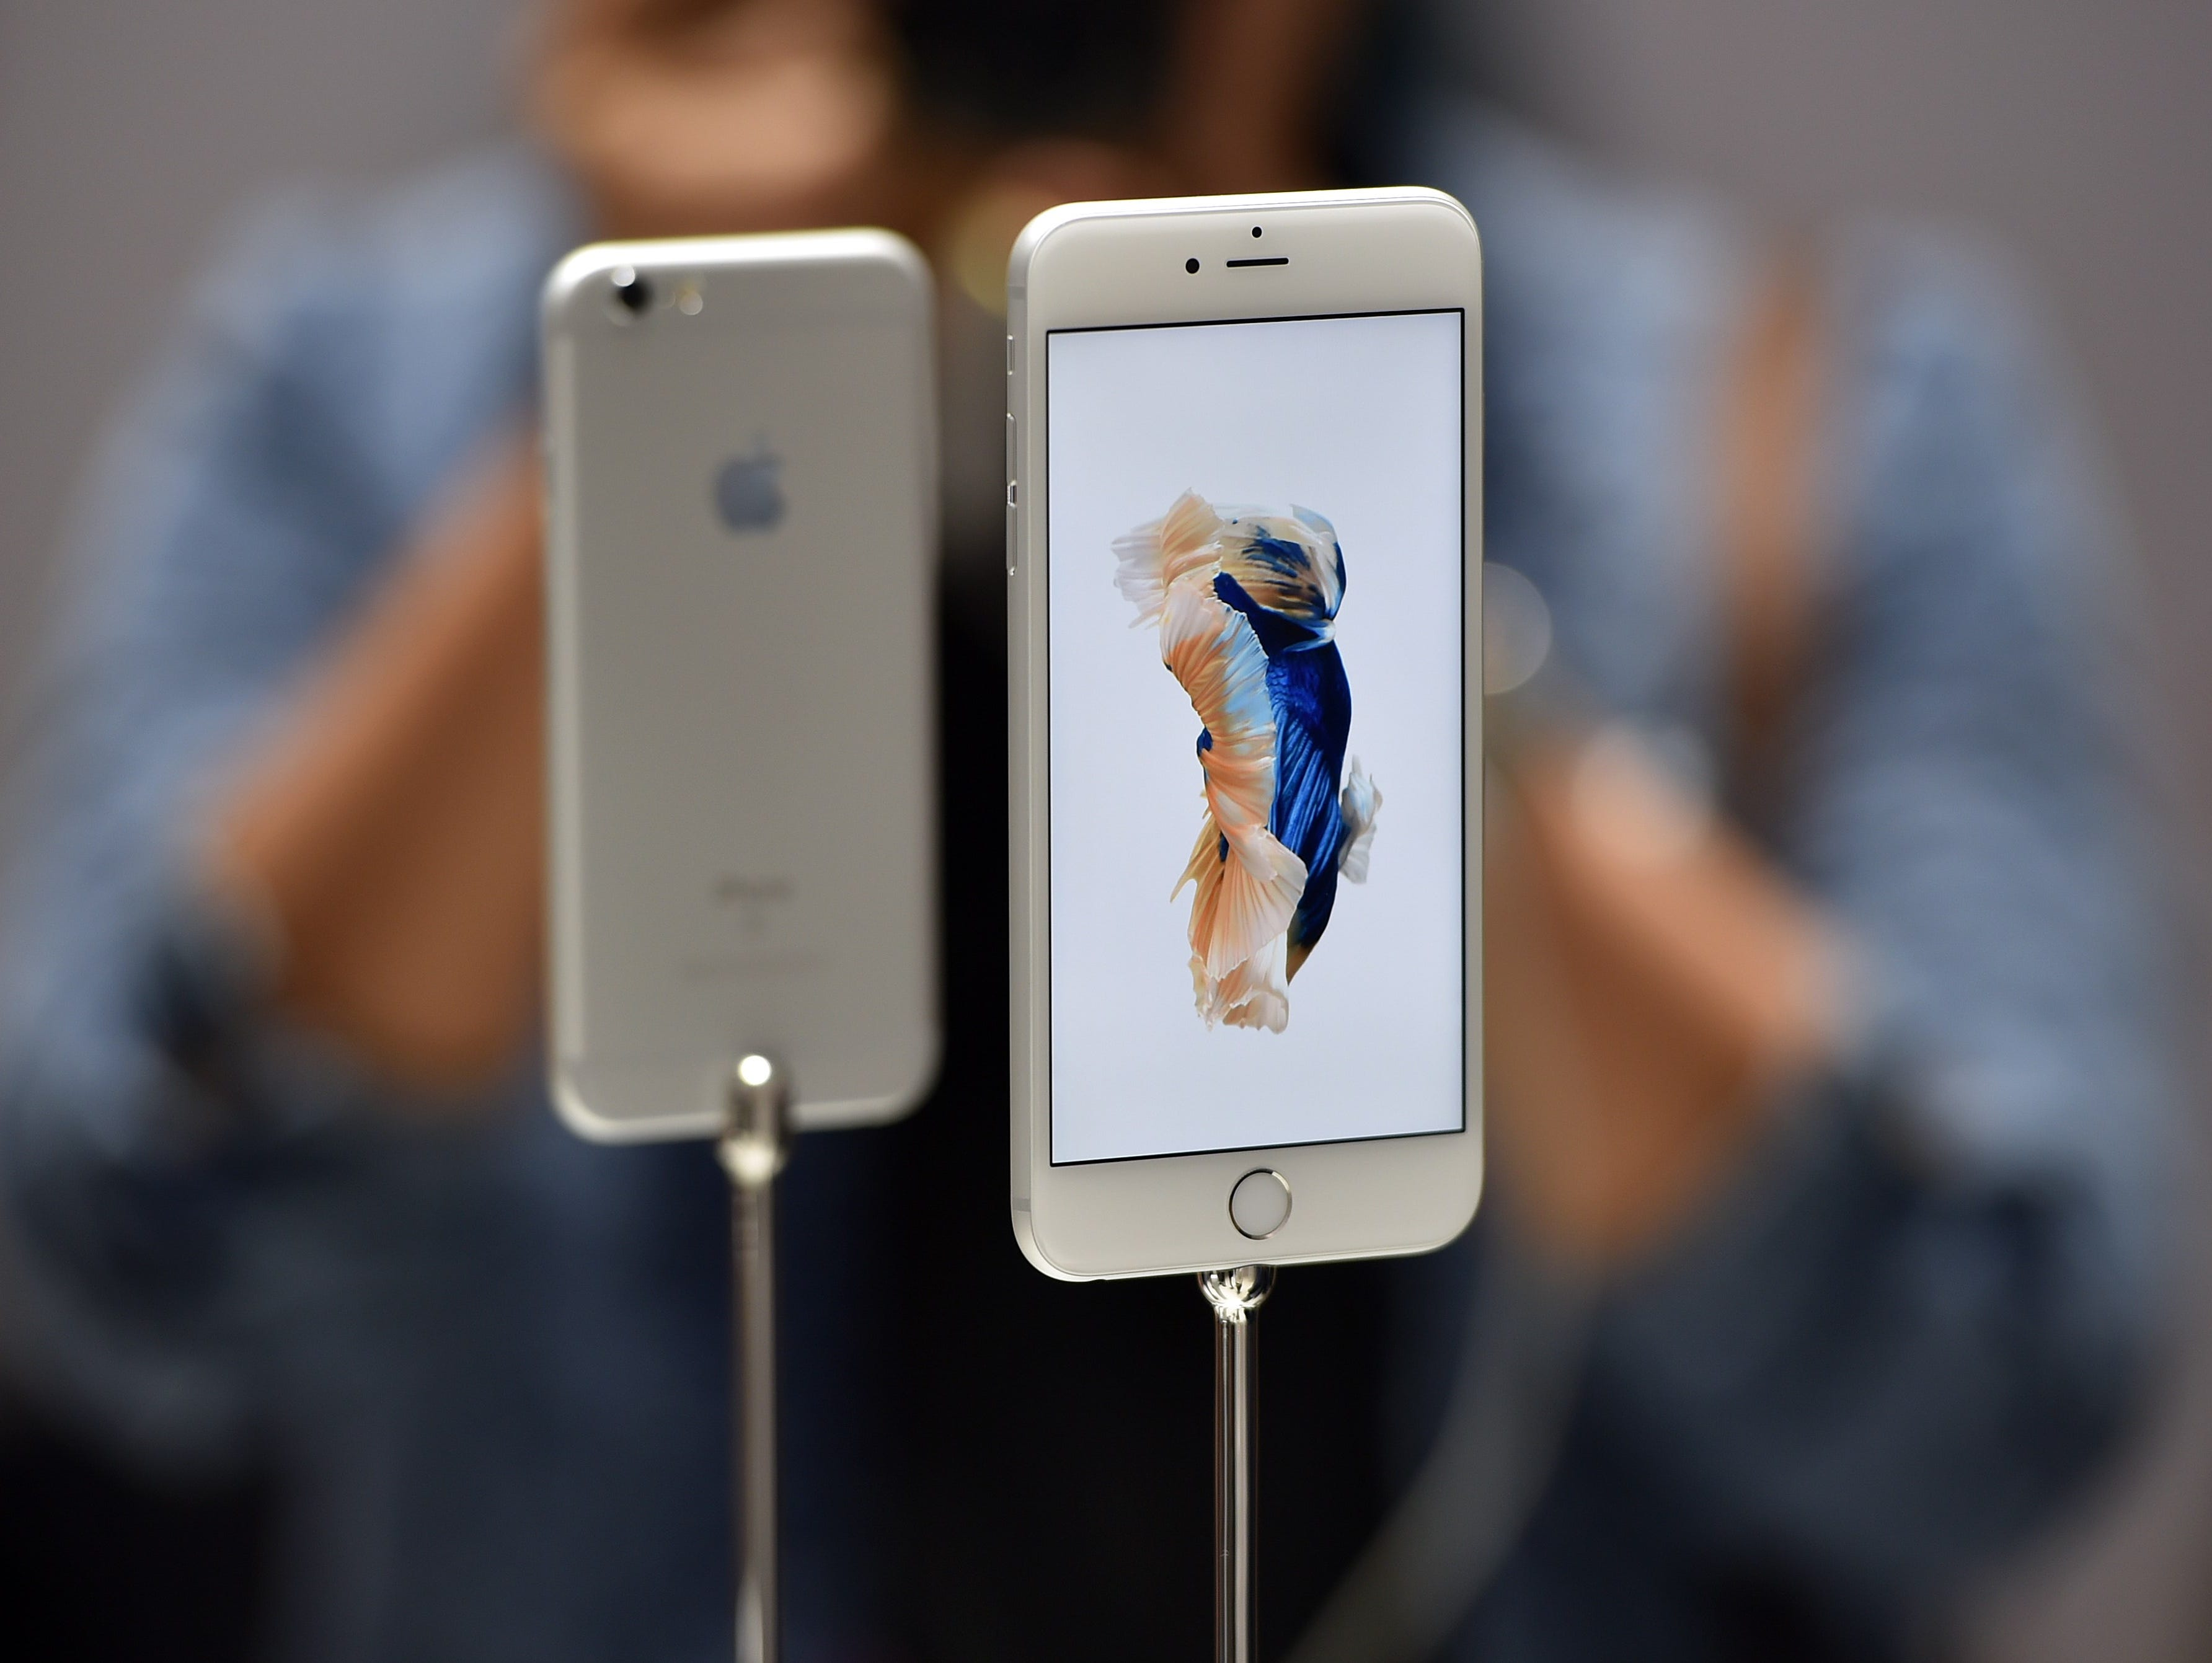 New models of the iPhone 6S are seen displayed during an Apple media event.